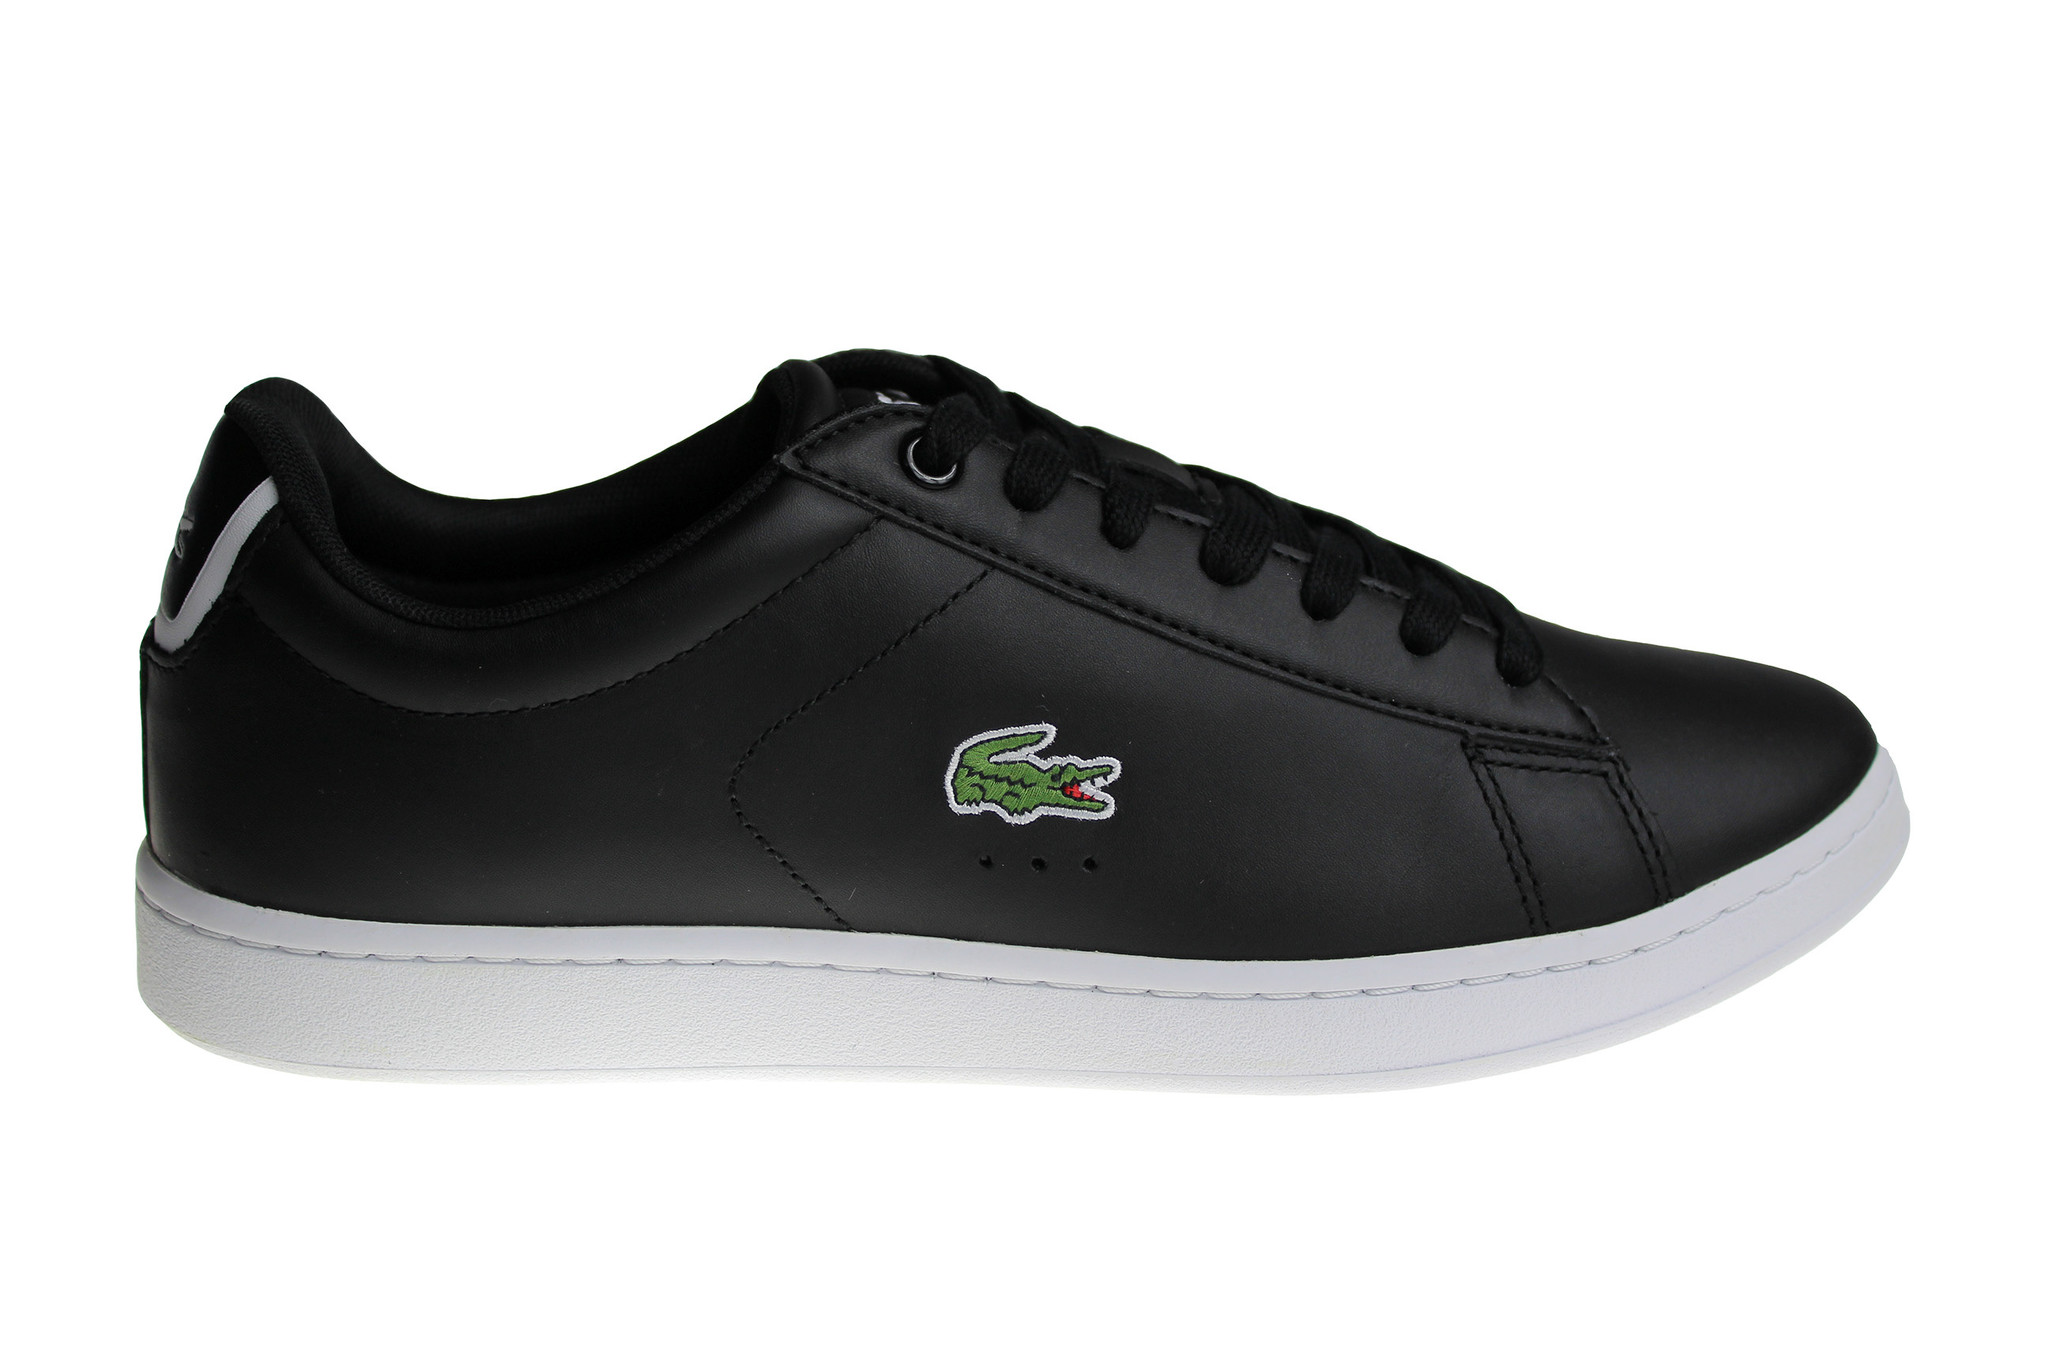 9425d712e Lacoste Carnaby Evo BL 1 Spm Blk (Black White) Lth Syn 7-33SPM1002024 Shoes